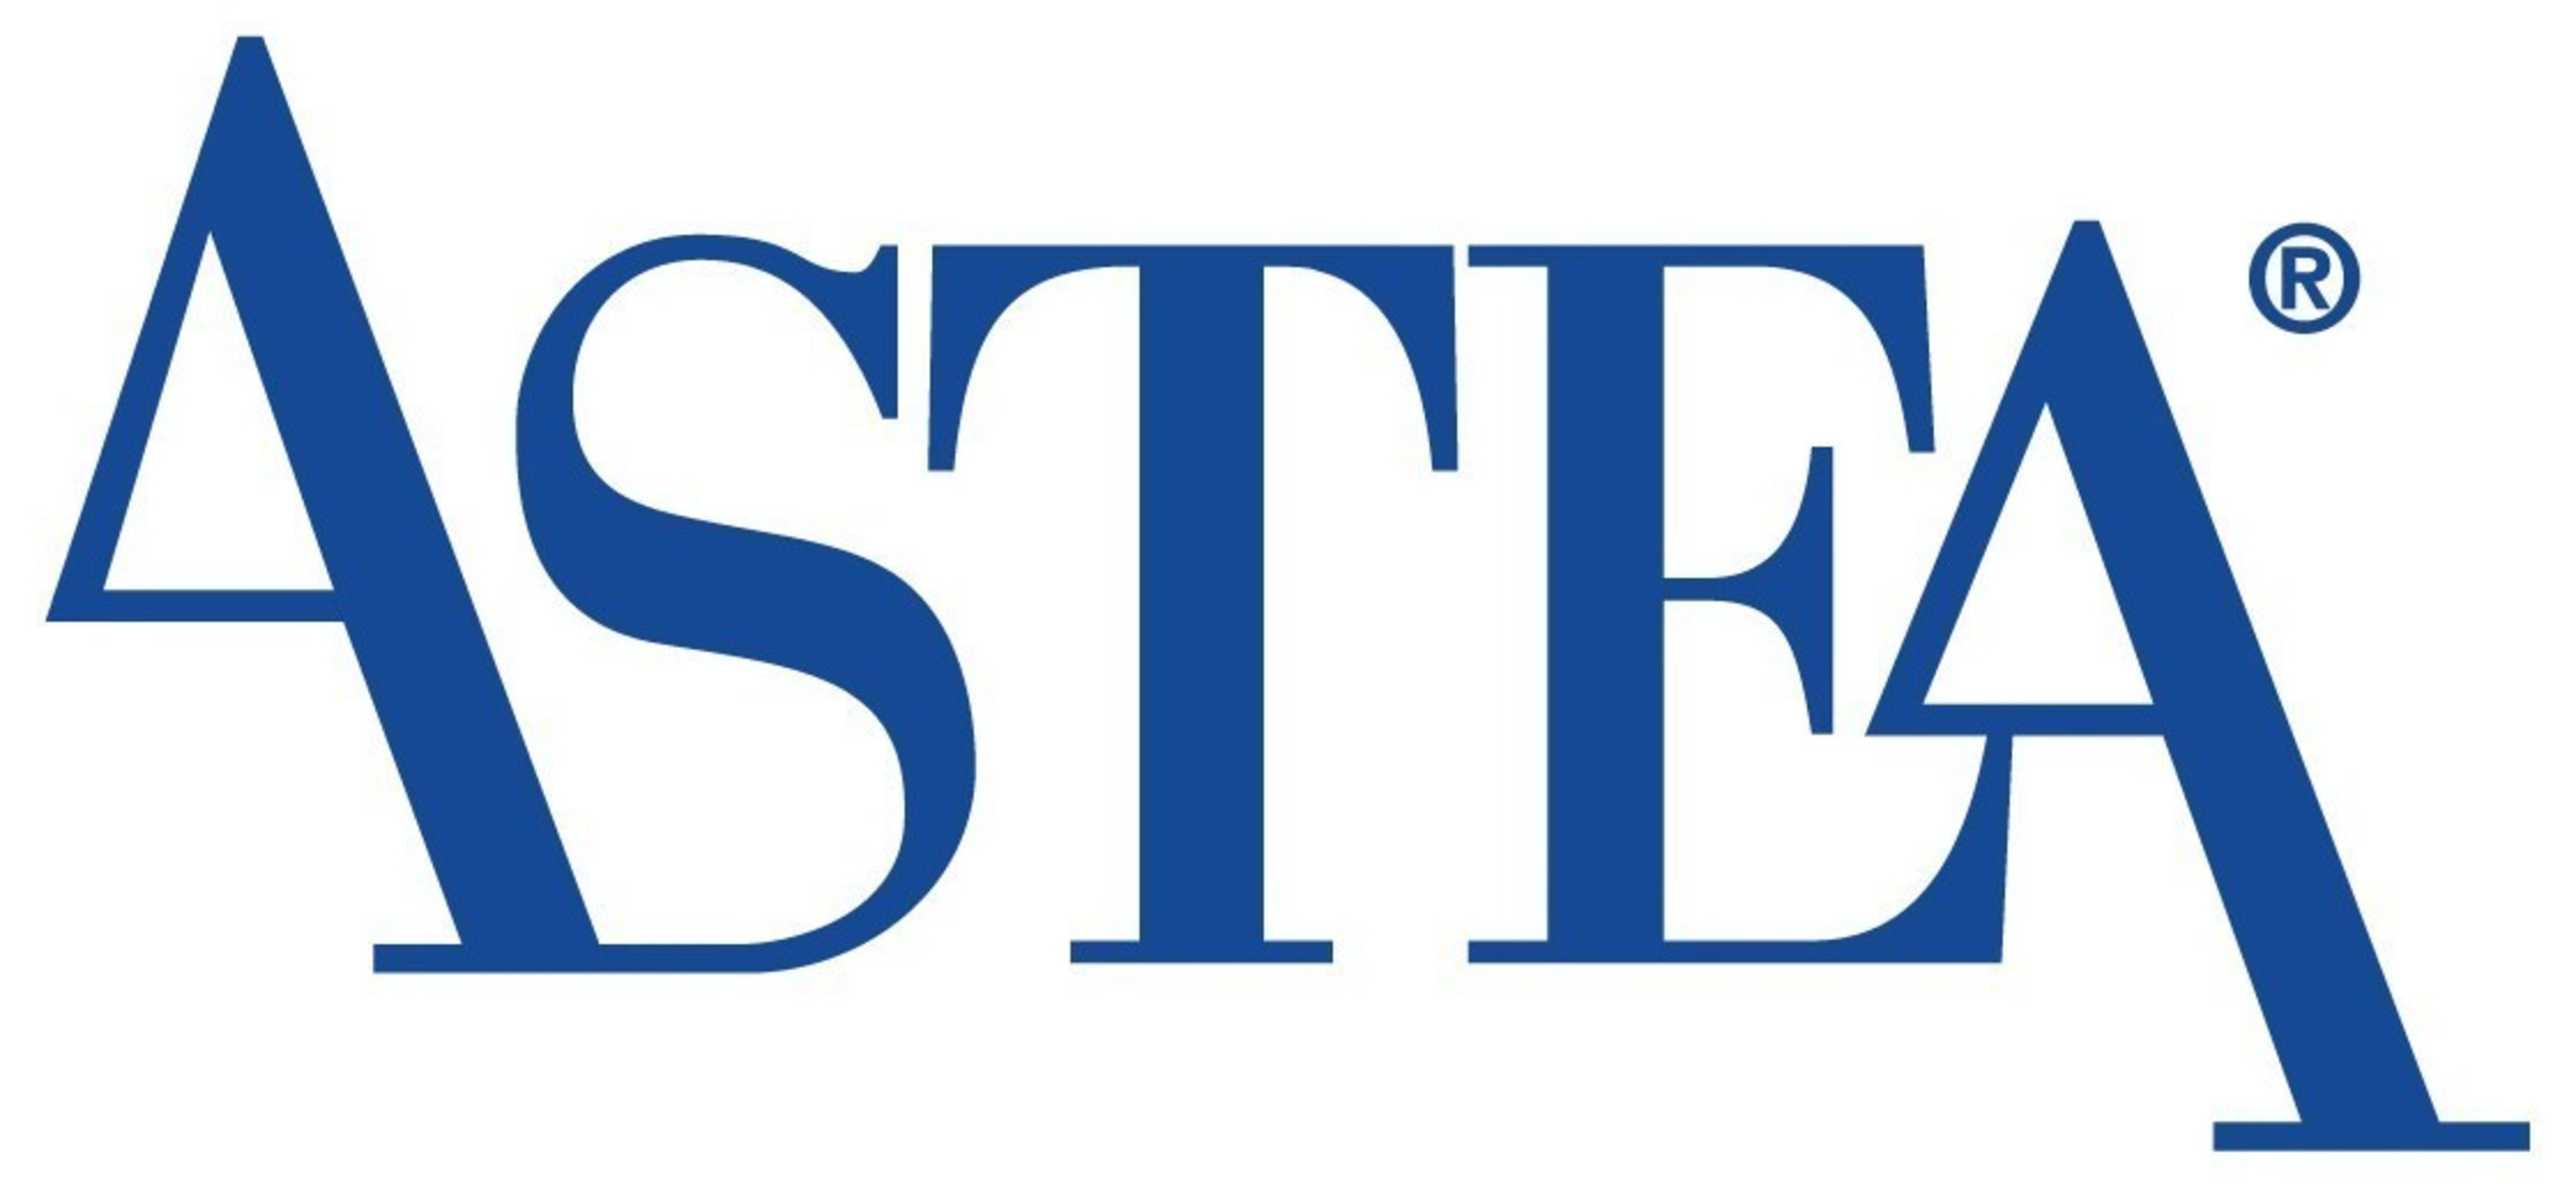 Bytes Managed Solutions Implements Astea's Service